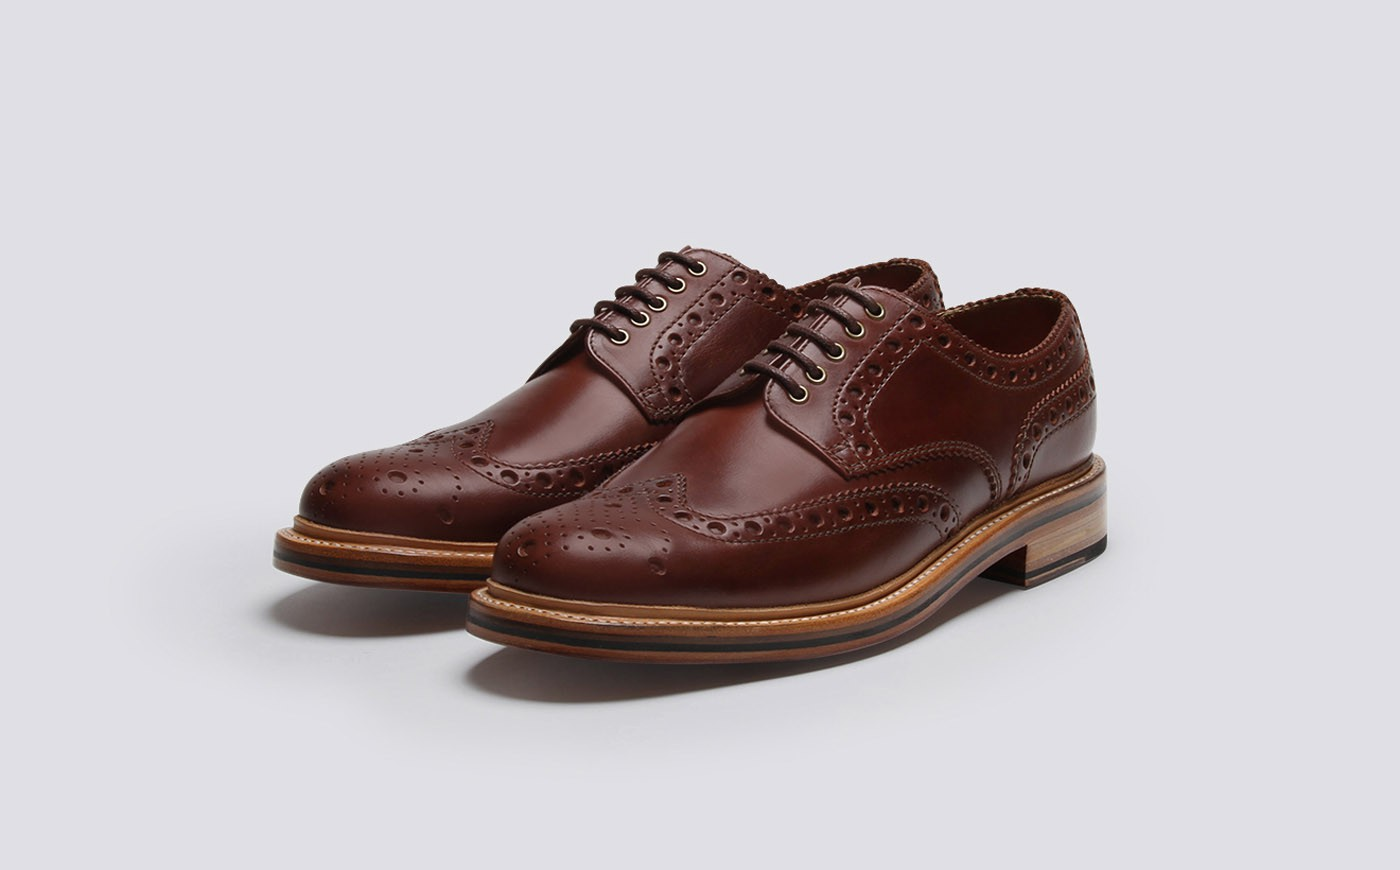 Cherry Leather Shoes